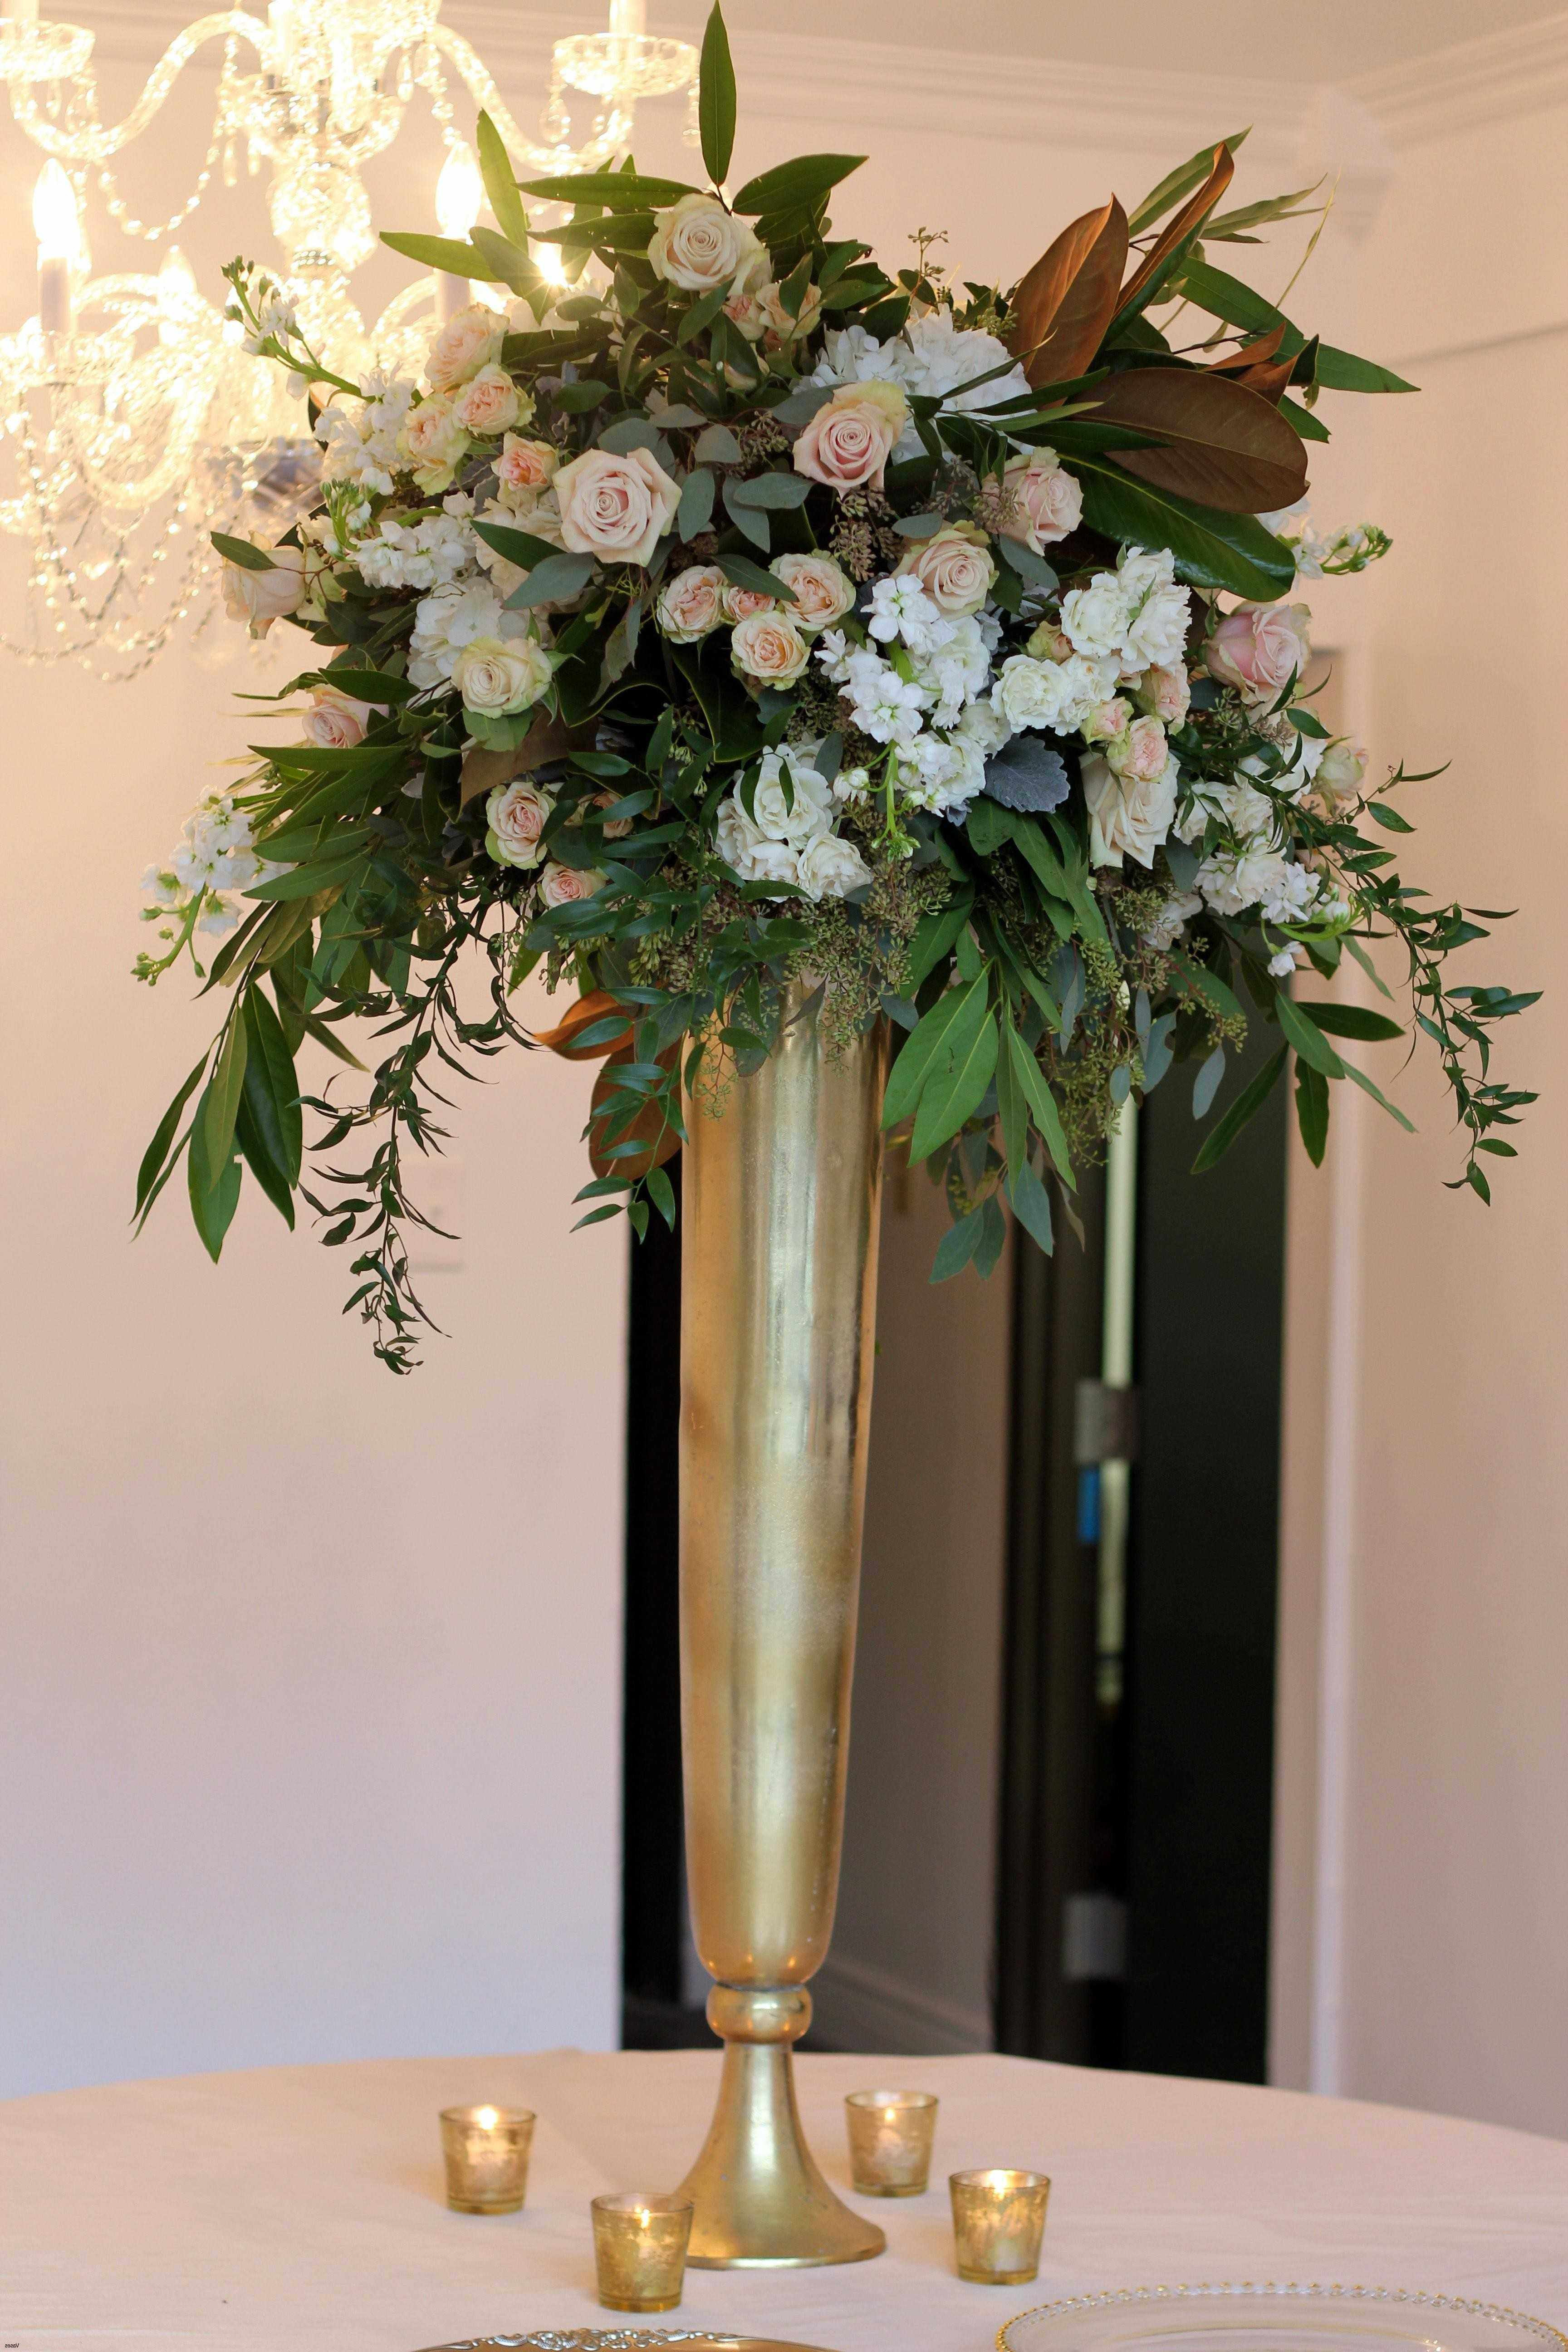 cheap gold vases for centerpieces of 60 inspirational bulk wedding flowers a anna wedding in bulk wedding flowers new living room gold vases bulk luxury nautical centerpieceh vases of 60 inspirational